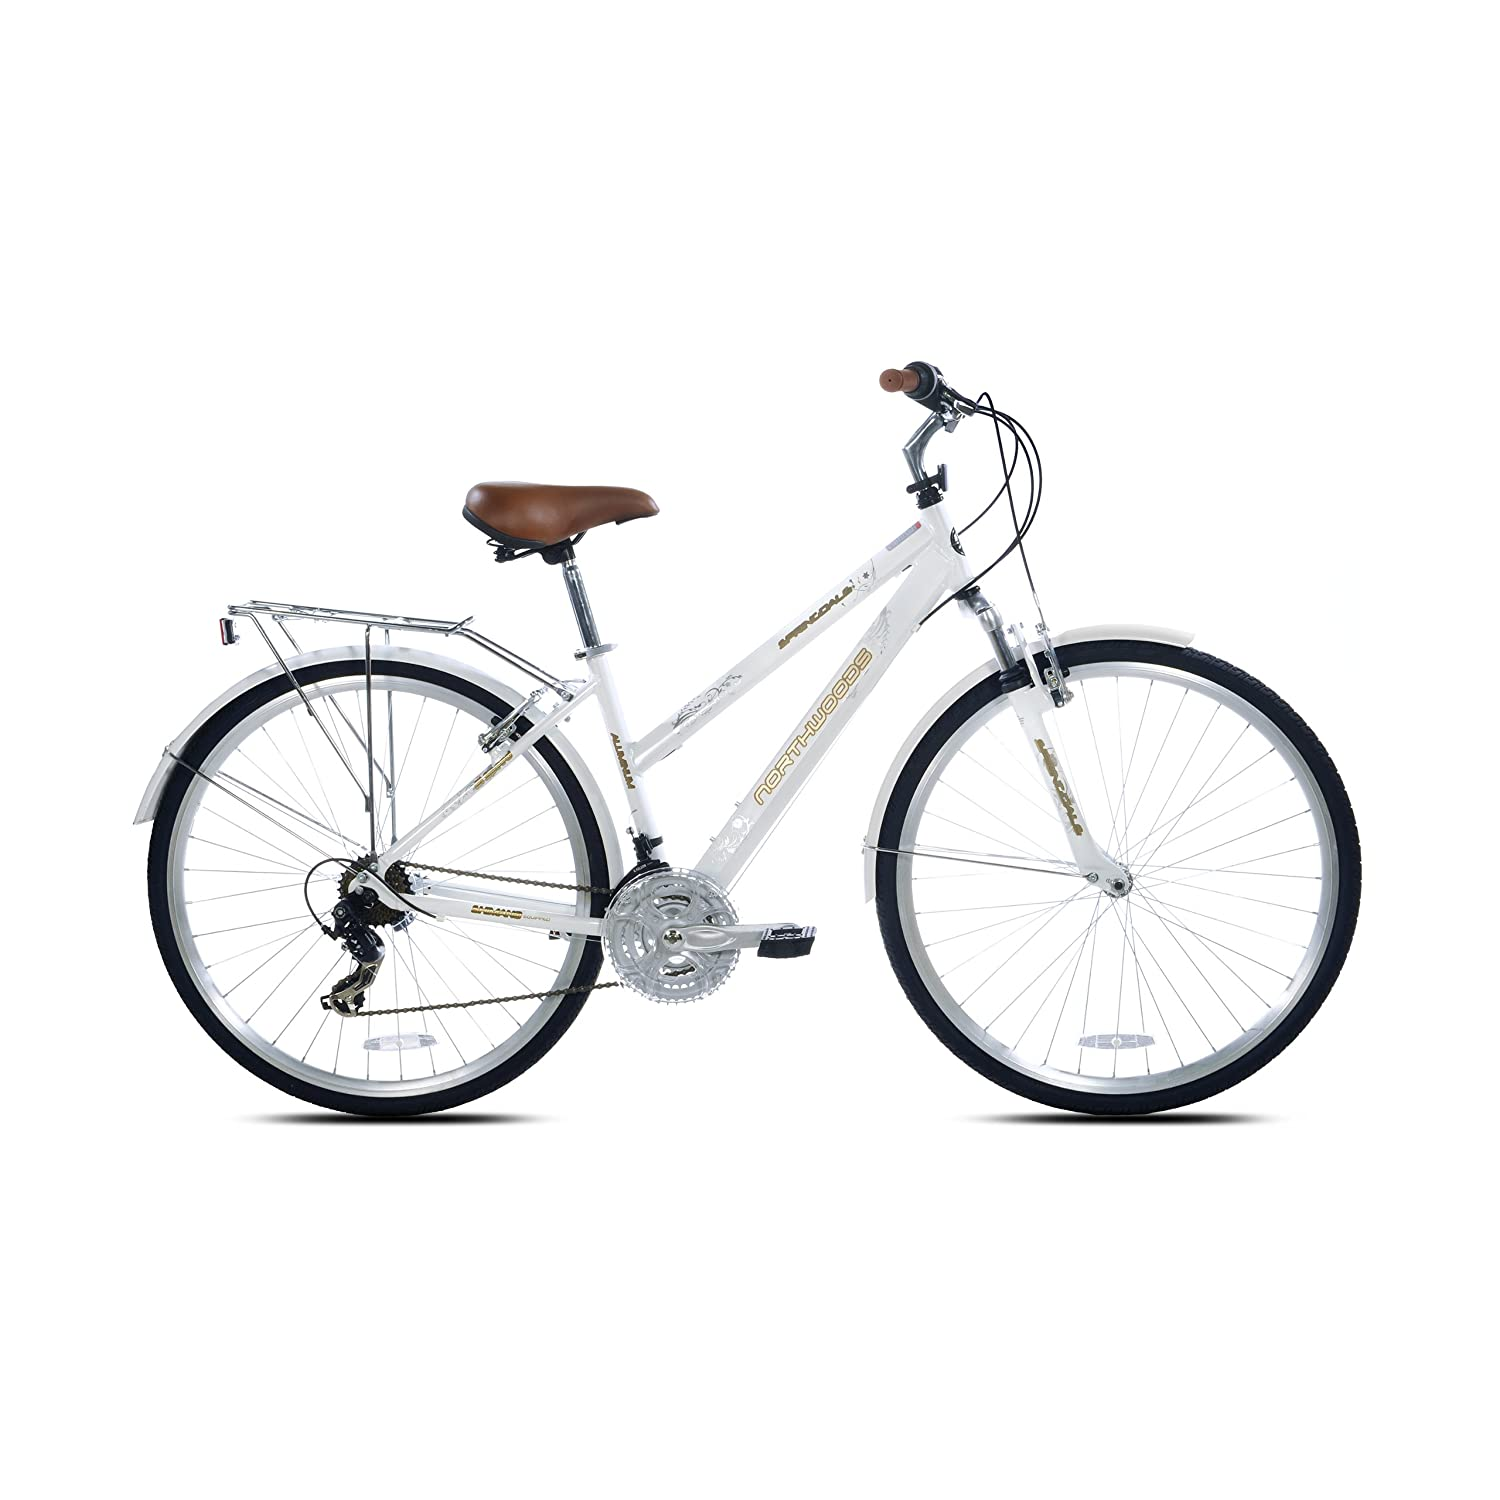 The Northwood Ladies Springdale 21 High Speed Hybrid Bicycle